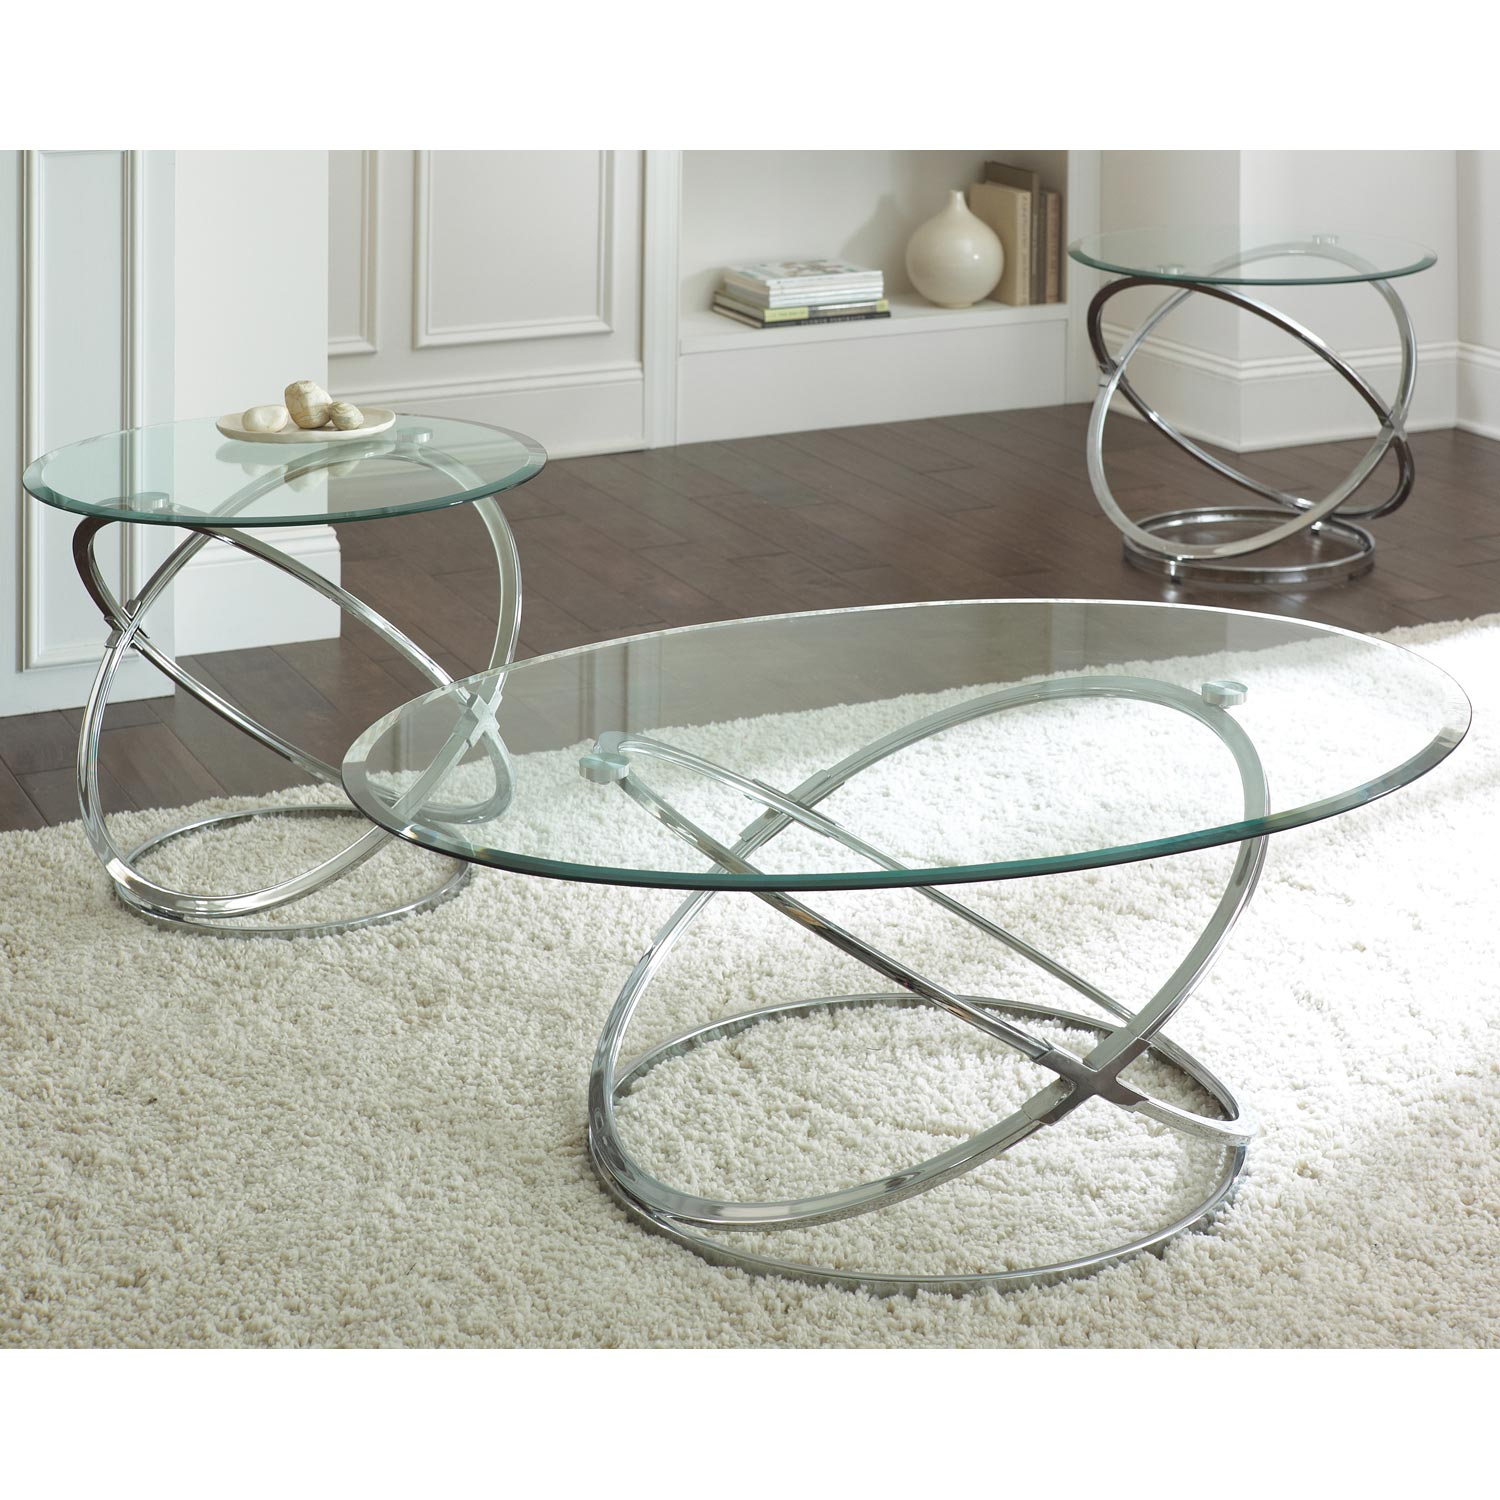 Orion 3 Piece Coffee Table Set - Glass, Chrome Rings Base - SSC-RN3000T-RN3000B